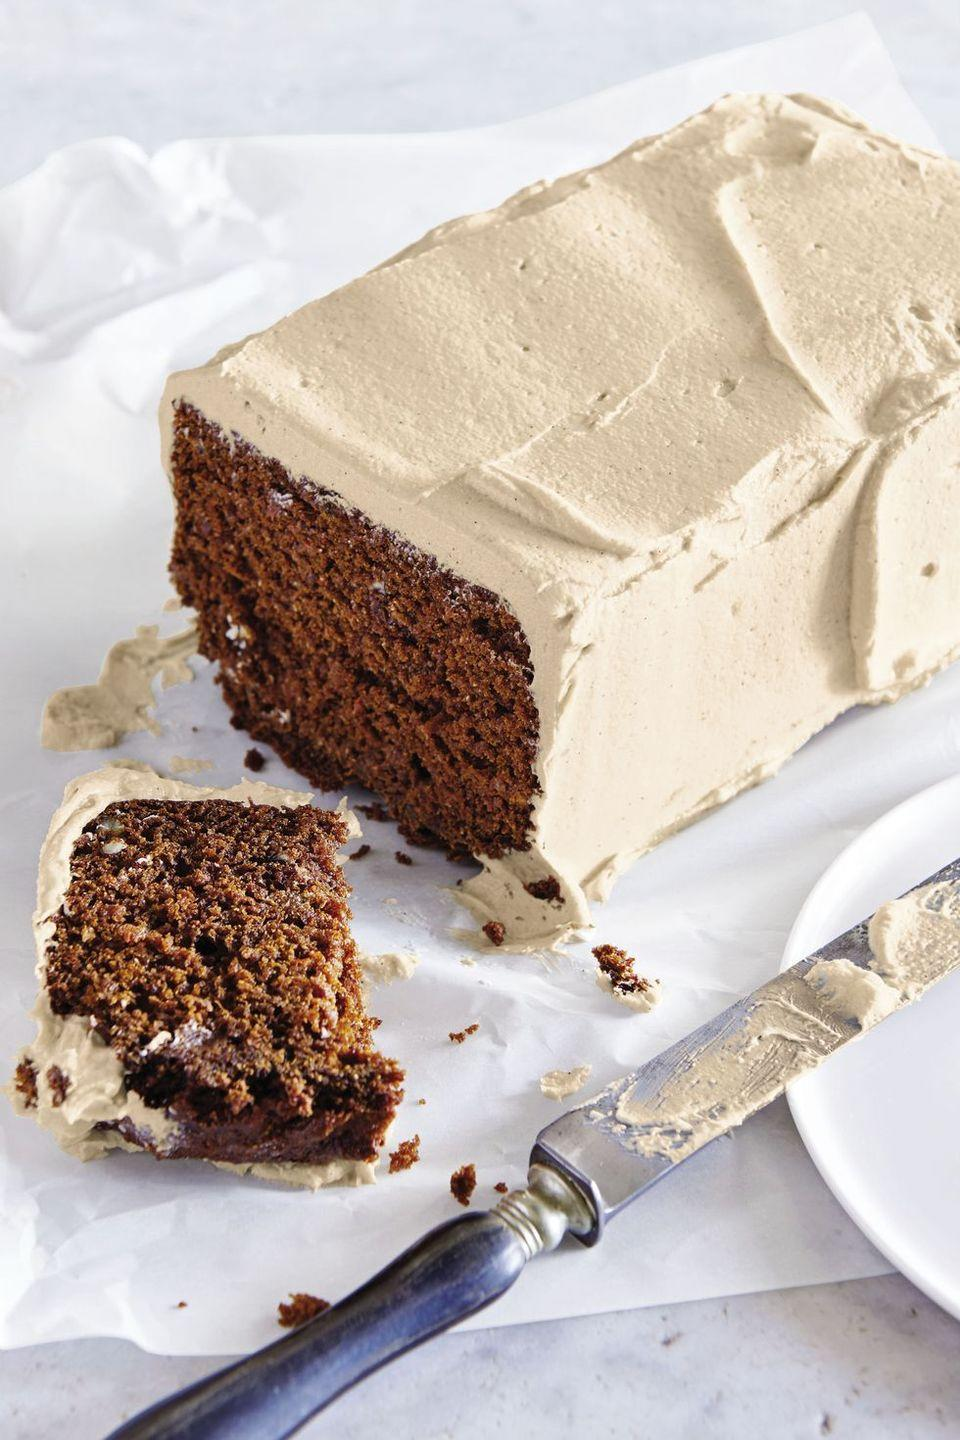 """<p>For everyone dressing up like a villain this year, rule-breaking carrot cake (with whole-wheat flour and brown sugar!) is the devilish dessert for you.</p><p><em><a href=""""https://www.goodhousekeeping.com/food-recipes/dessert/a40367/outlaw-carrot-cake-with-brown-sugar-butter-cream-recipe/"""" rel=""""nofollow noopener"""" target=""""_blank"""" data-ylk=""""slk:Get the recipe for Outlaw Carrot Cake with Brown Sugar Butter Cream »"""" class=""""link rapid-noclick-resp"""">Get the recipe for Outlaw Carrot Cake with Brown Sugar Butter Cream »</a></em></p><p><strong>RELATED: </strong><a href=""""https://www.goodhousekeeping.com/food-recipes/dessert/g850/easy-carrot-desserts/"""" rel=""""nofollow noopener"""" target=""""_blank"""" data-ylk=""""slk:25 Easy Carrot Desserts You've Got to Try This Easter"""" class=""""link rapid-noclick-resp"""">25 Easy Carrot Desserts You've Got to Try This Easter</a><br></p>"""